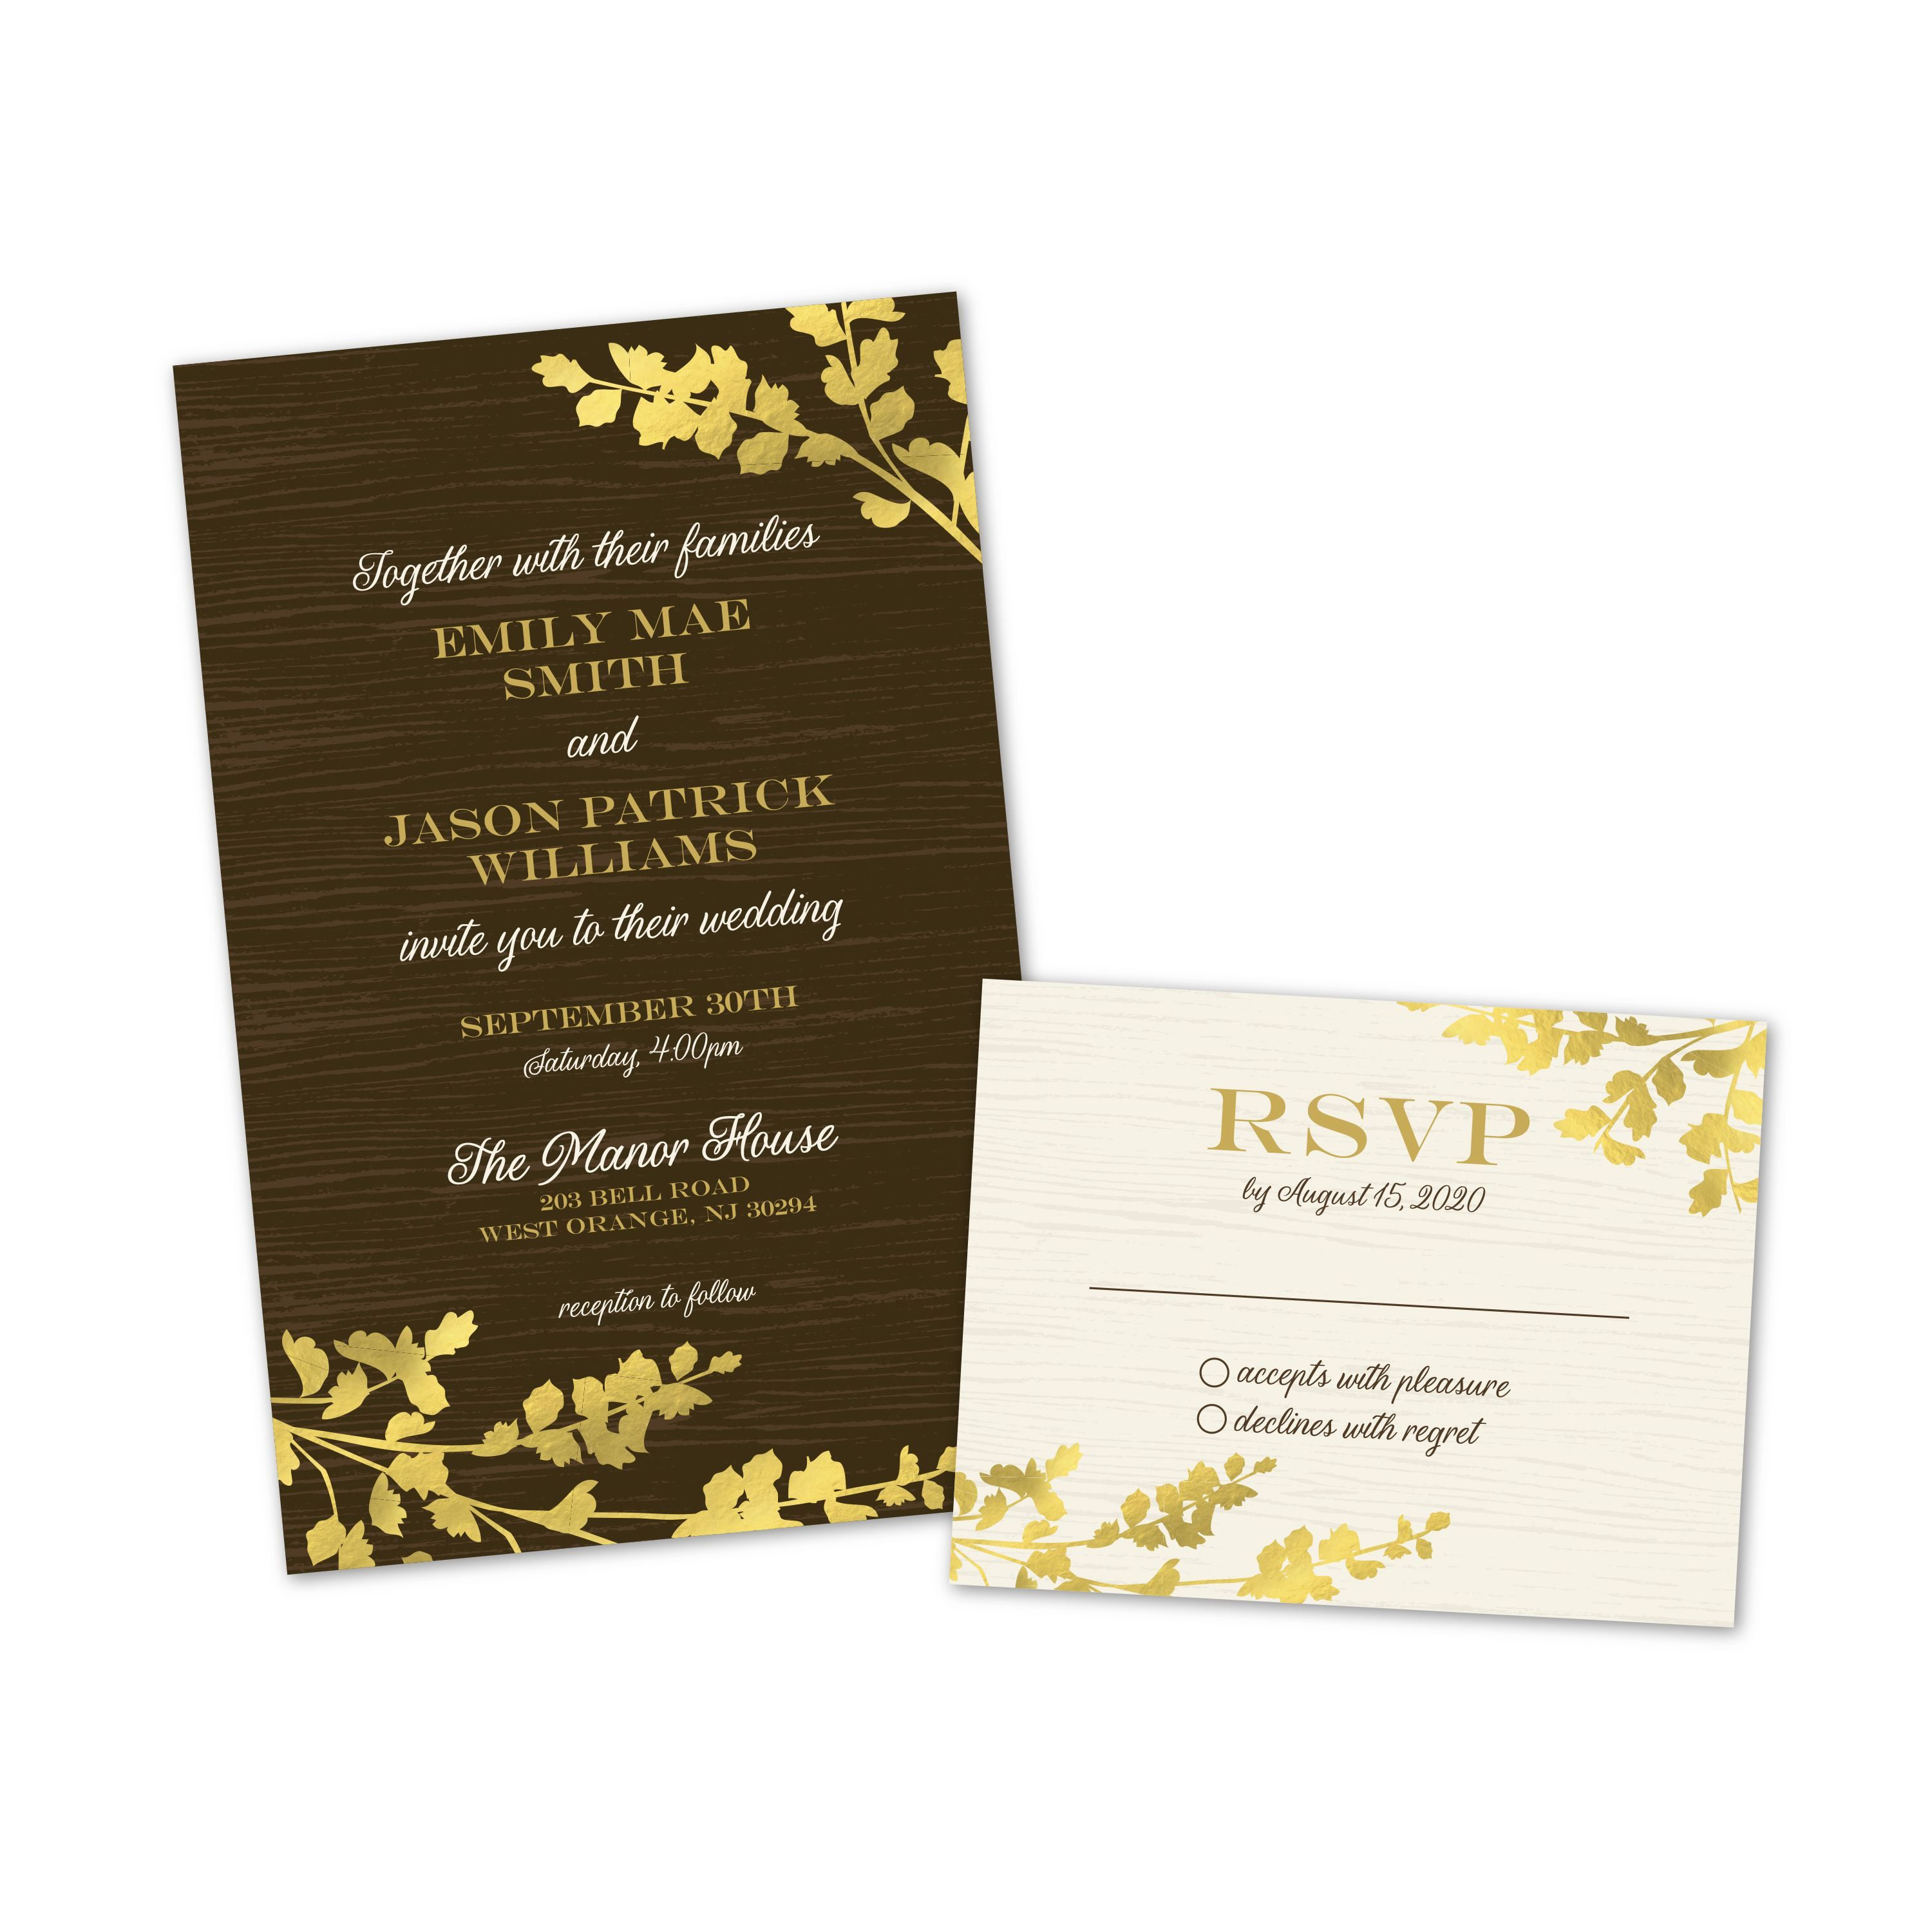 free templates for wedding response cards%0A Wedding Invitations With Rsvp Cards Included   Wedding Invitations And Rsvp  Cards Package  Superb Invitation    Invitation  Wedding Invitations